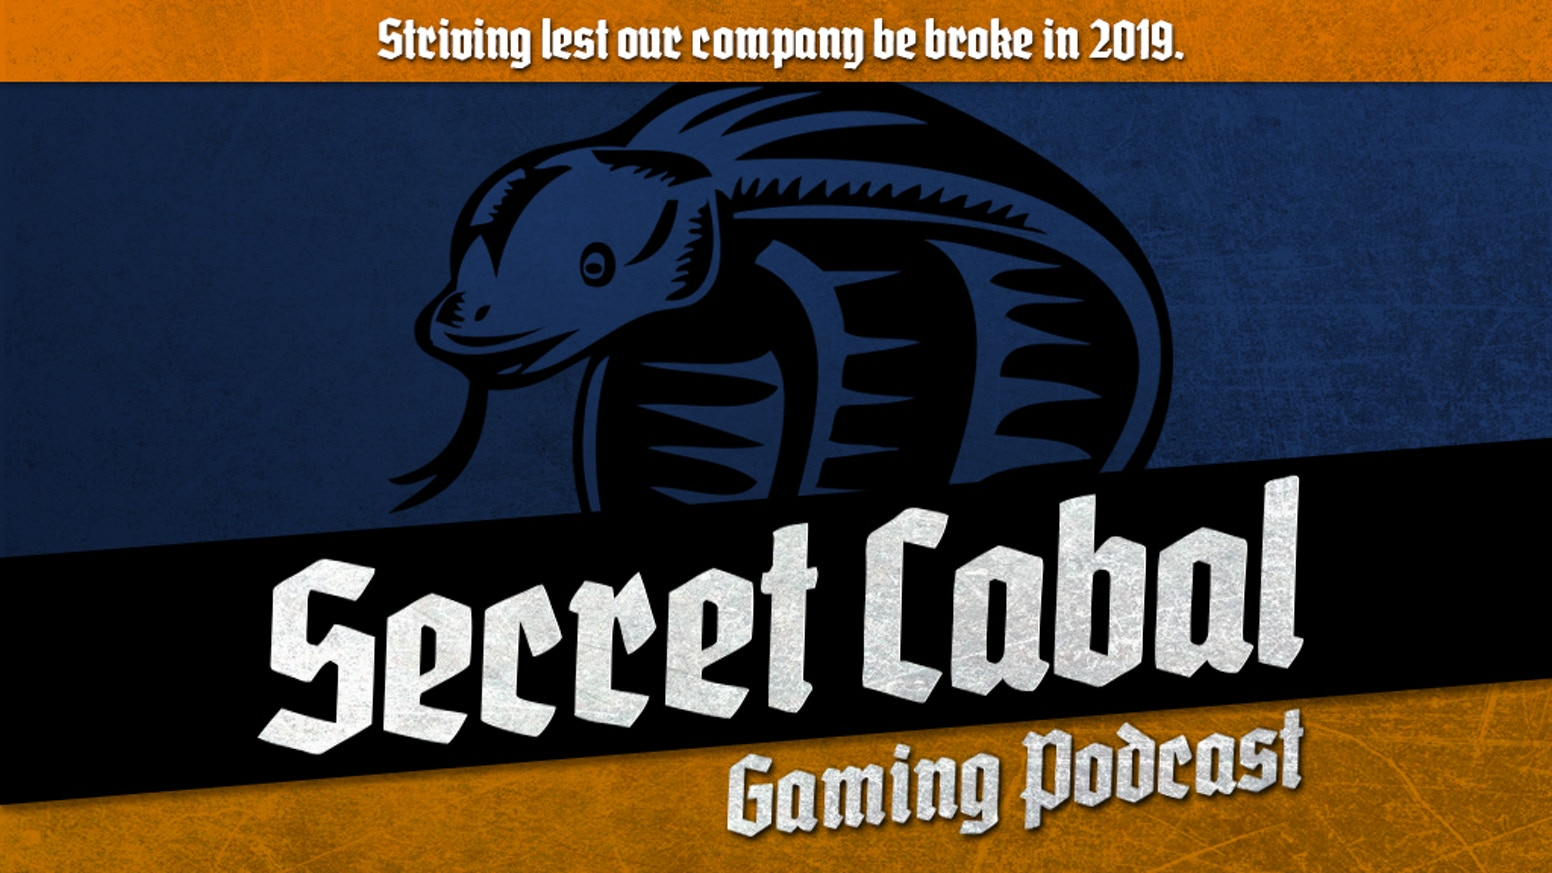 The gang at The Secret Cabal is ready to dive into 2019 with more weekly tabletop gaming podcasts and YouTube video content!